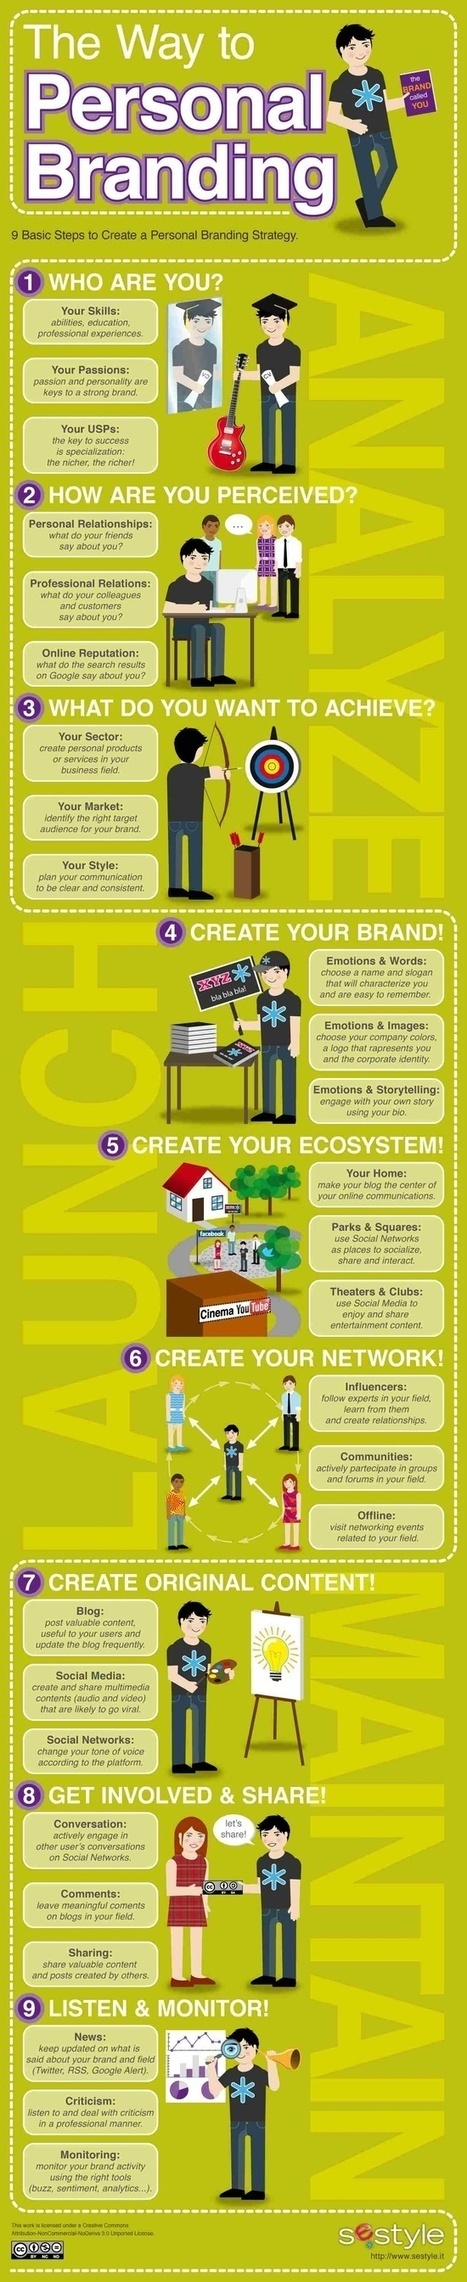 How to Create in 9 Steps Your Personal Branding Strategy   Learning-21st Century   Scoop.it